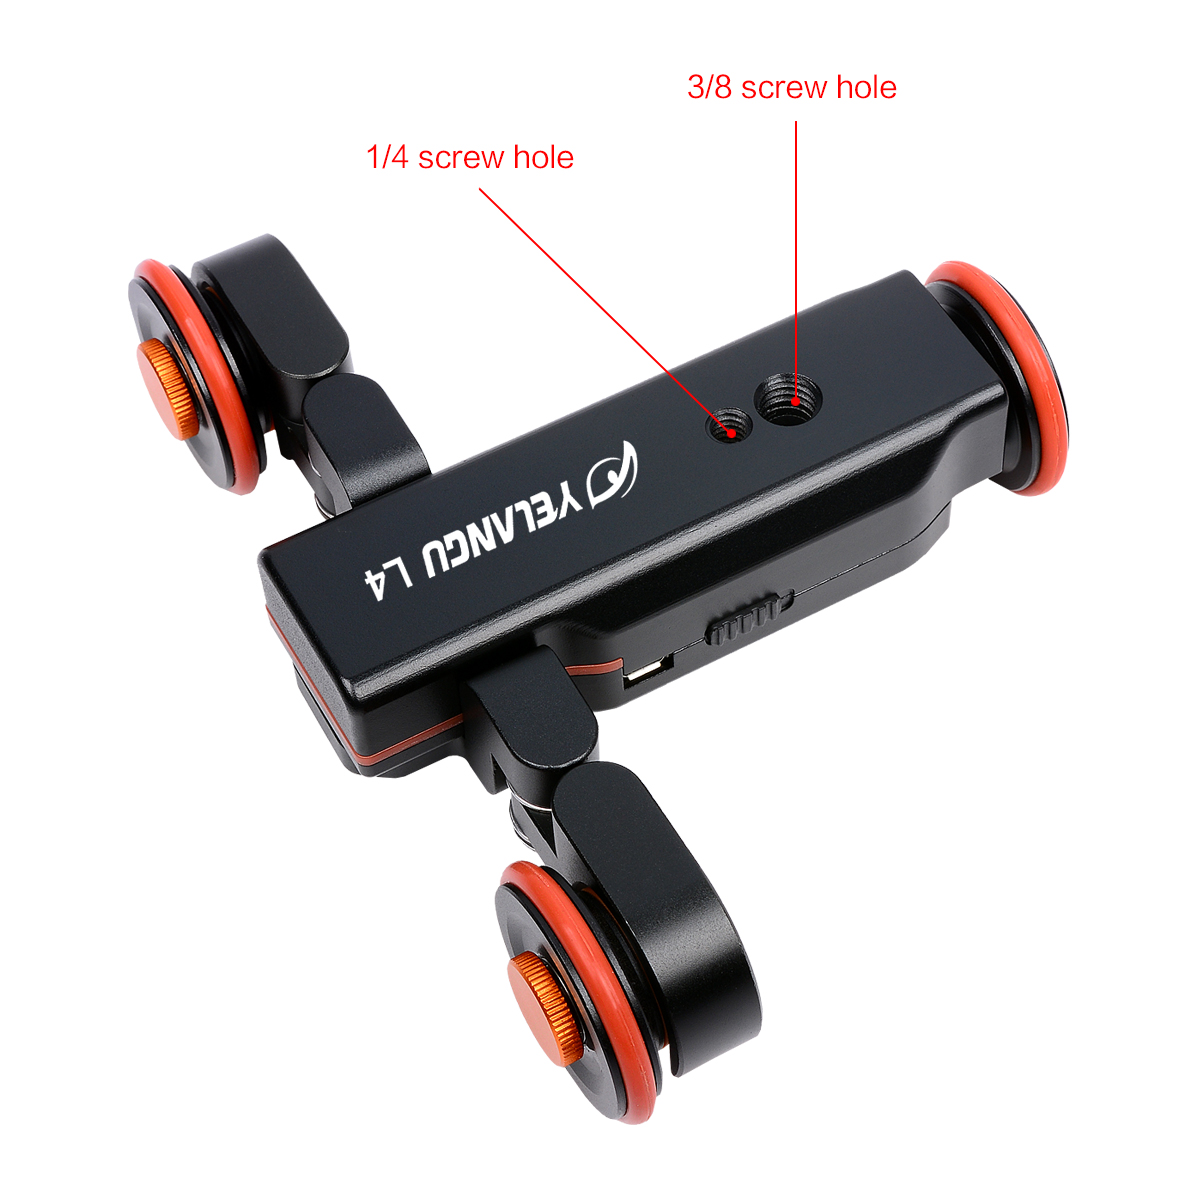 YELANGU Universal Track Skater Table Mini Camera Dolly For Cameras And Camcorders